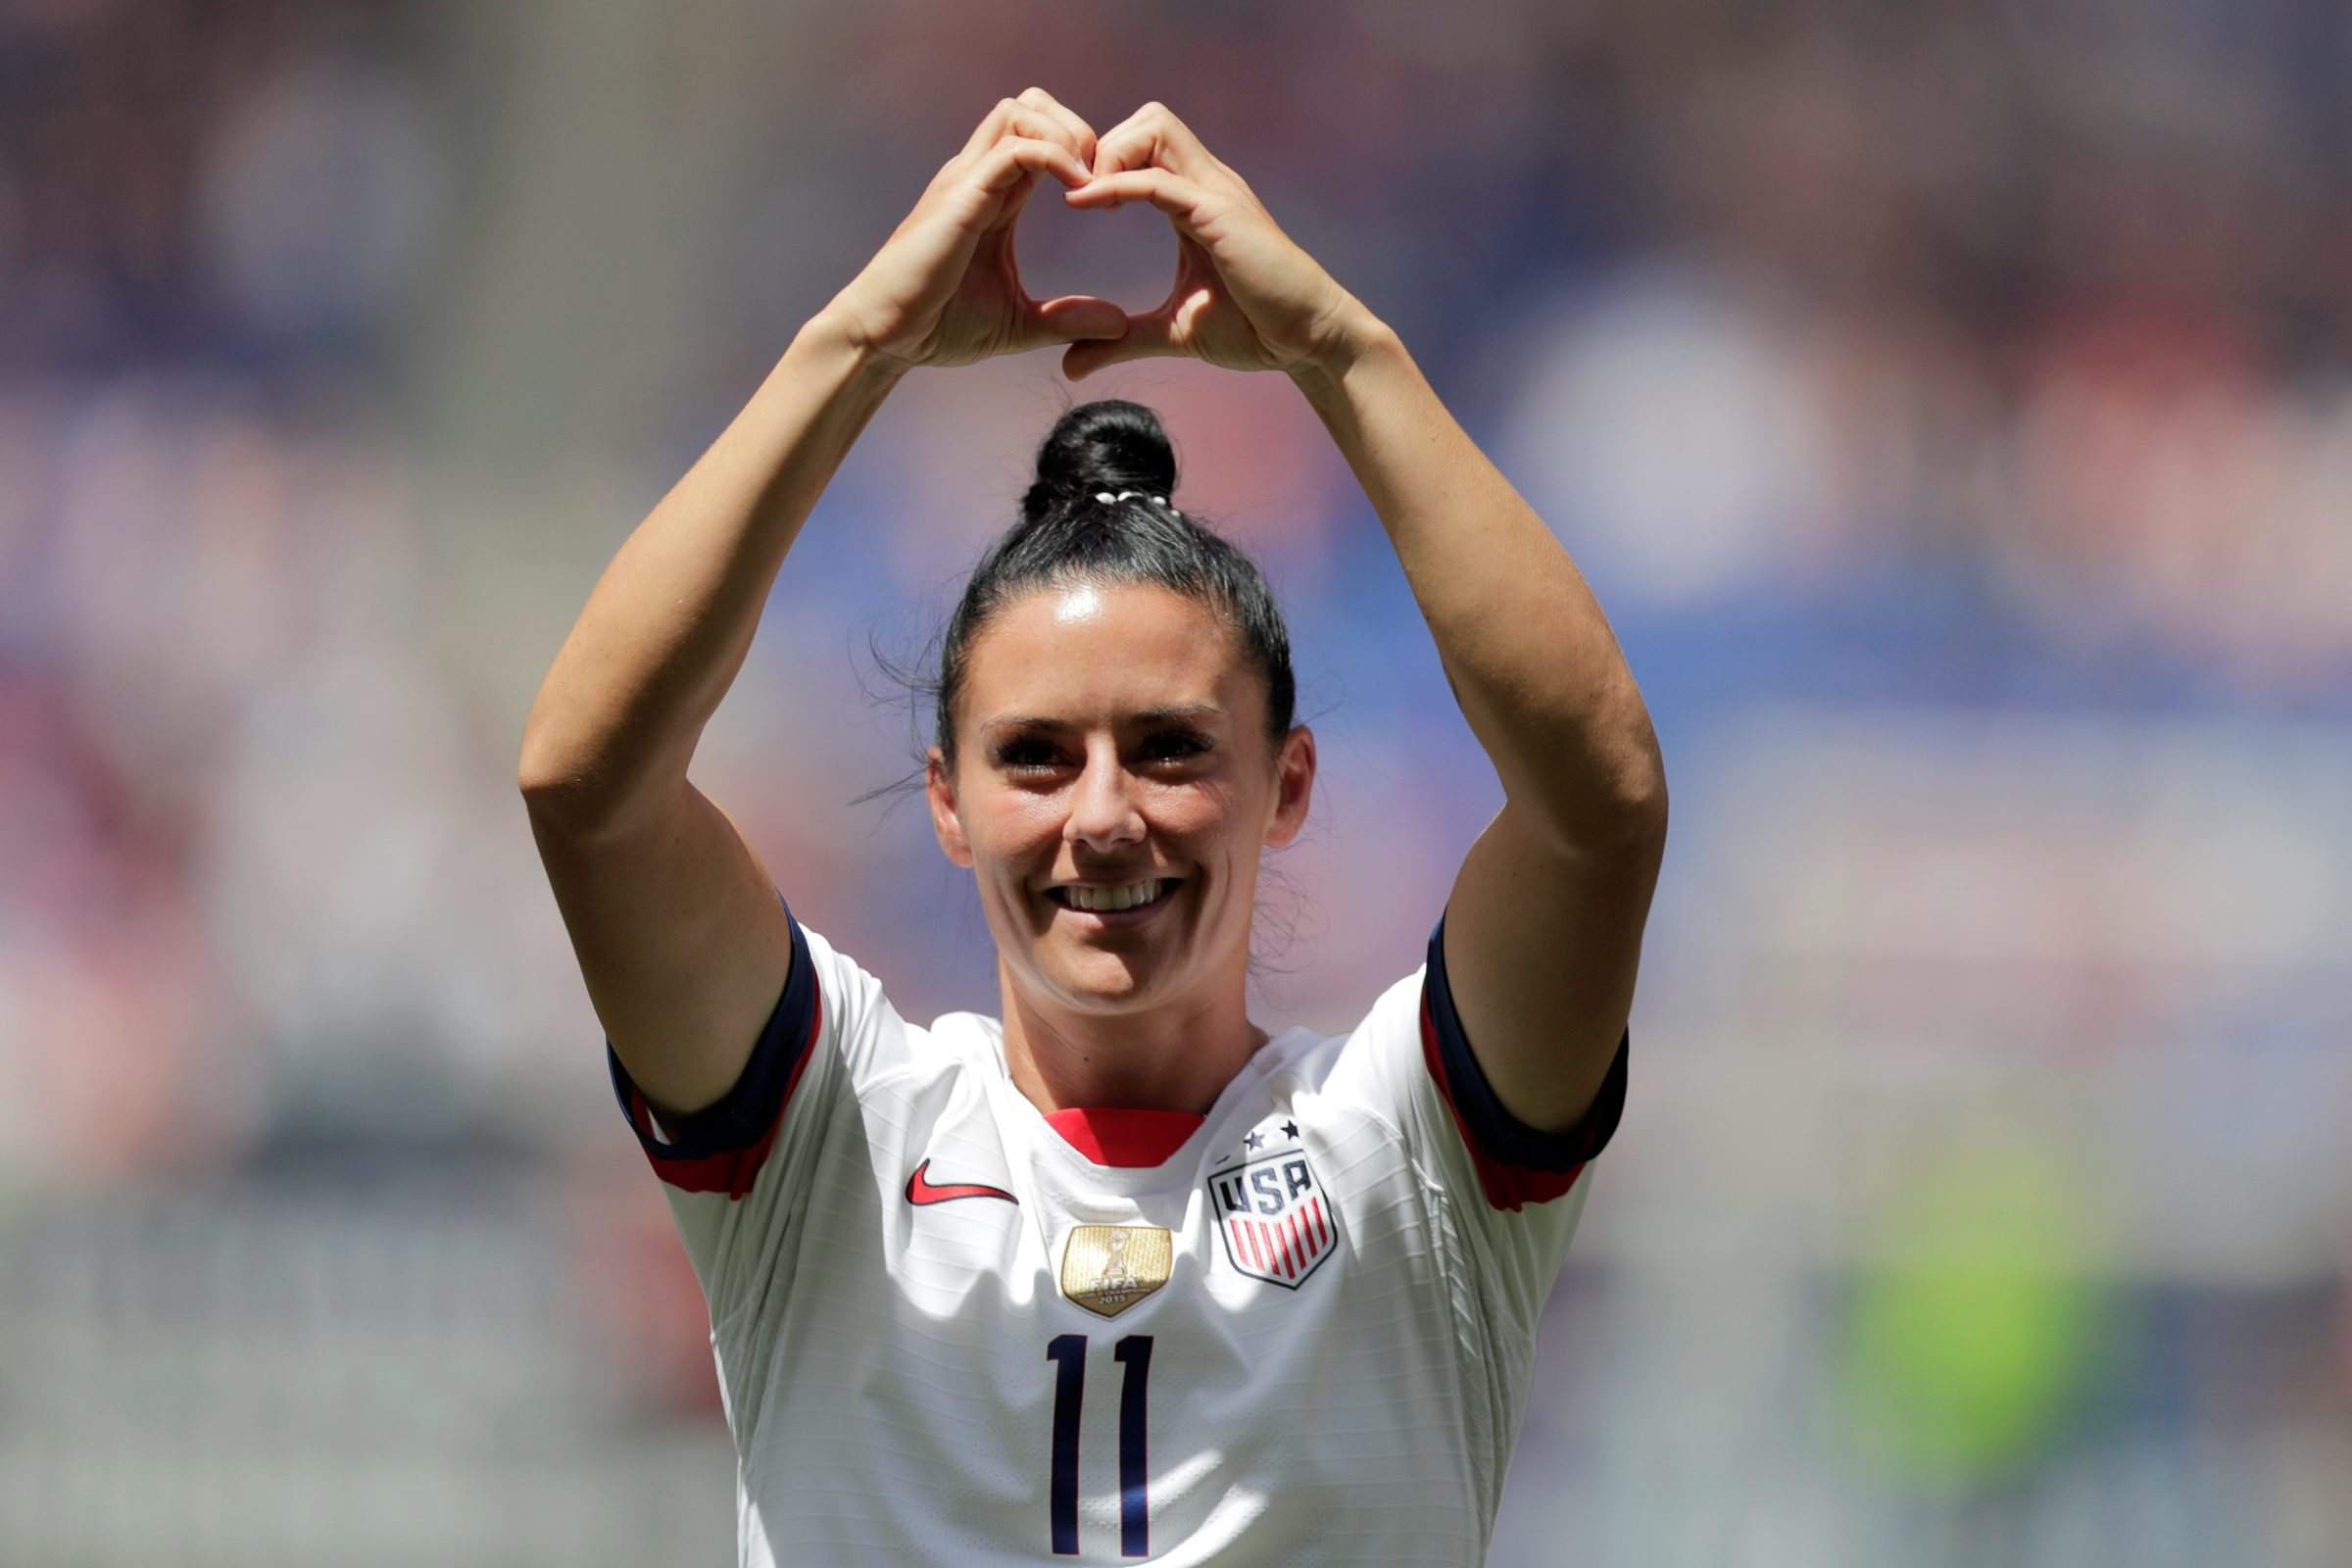 2cea4aedc09 Ali Krieger, a defender for the United States women's national team which  is headed to the FIFA Women's World Cup, is introduced to fans during a  send-off ...